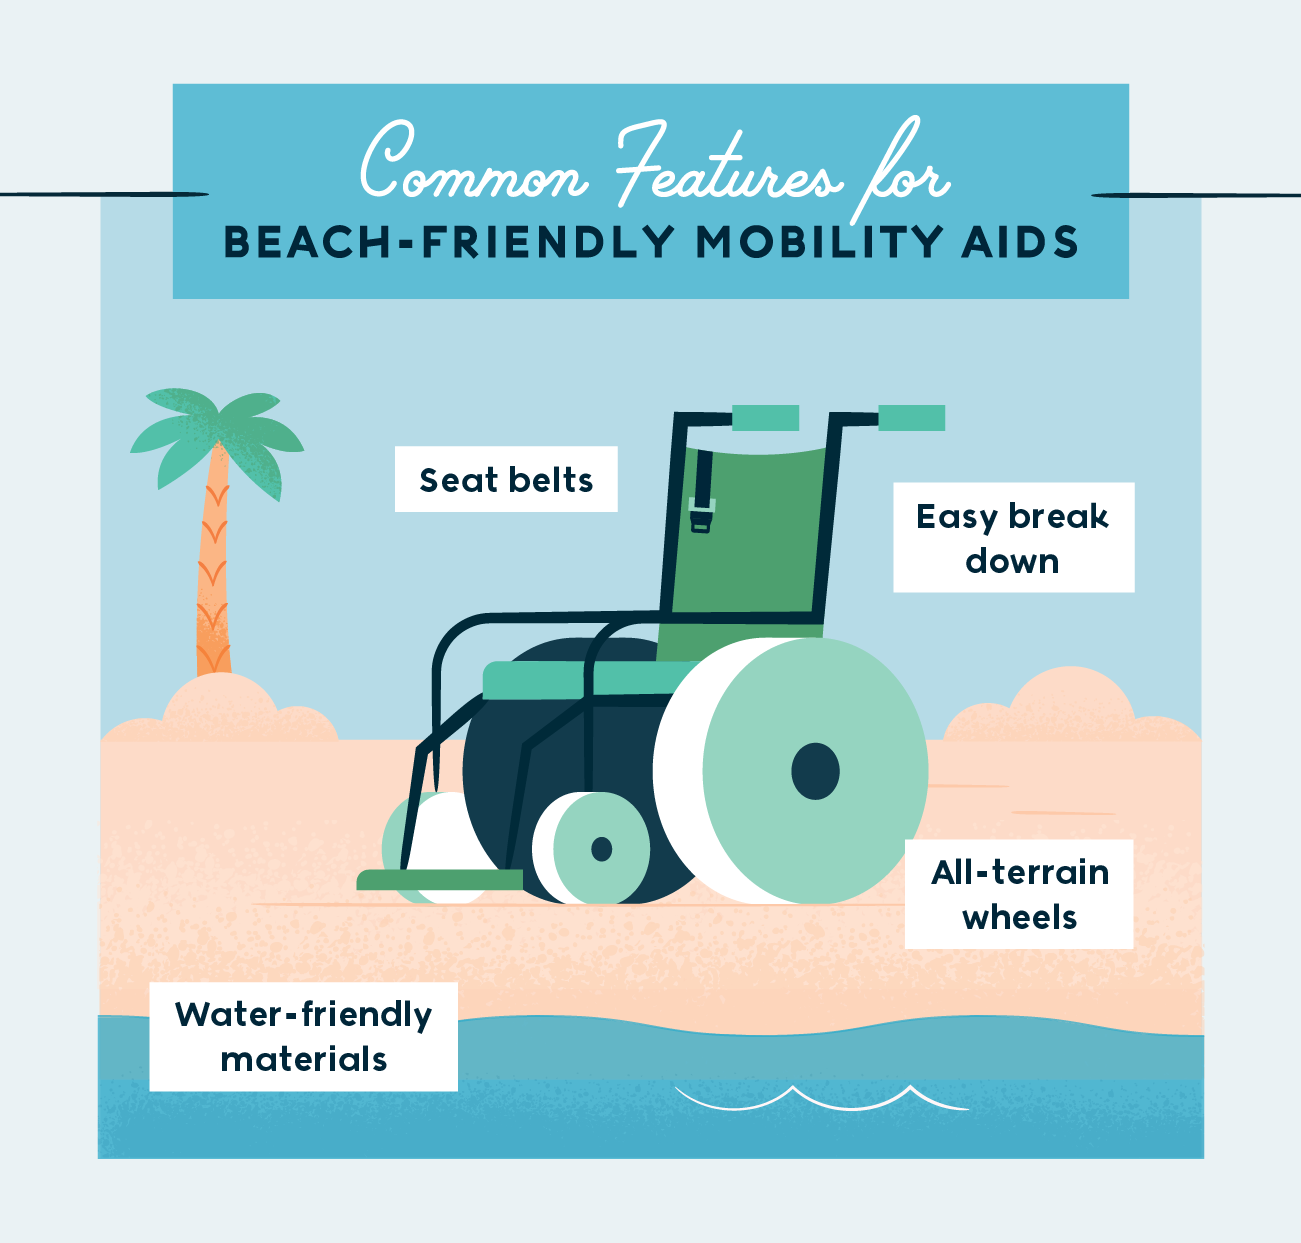 common features for beach-friendly mobility aids